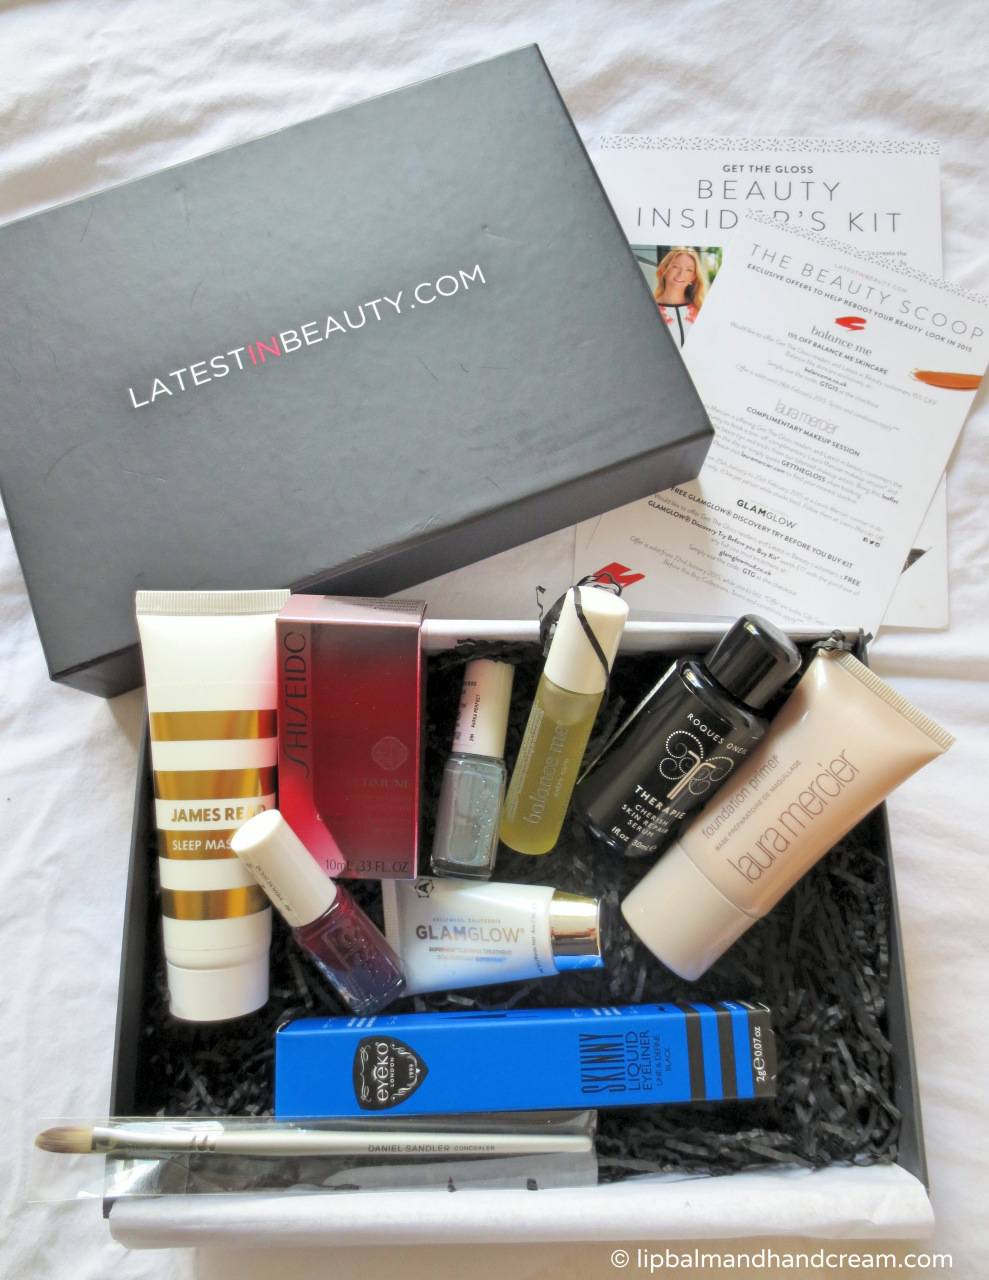 Latest in Beauty box from Get the Gloss